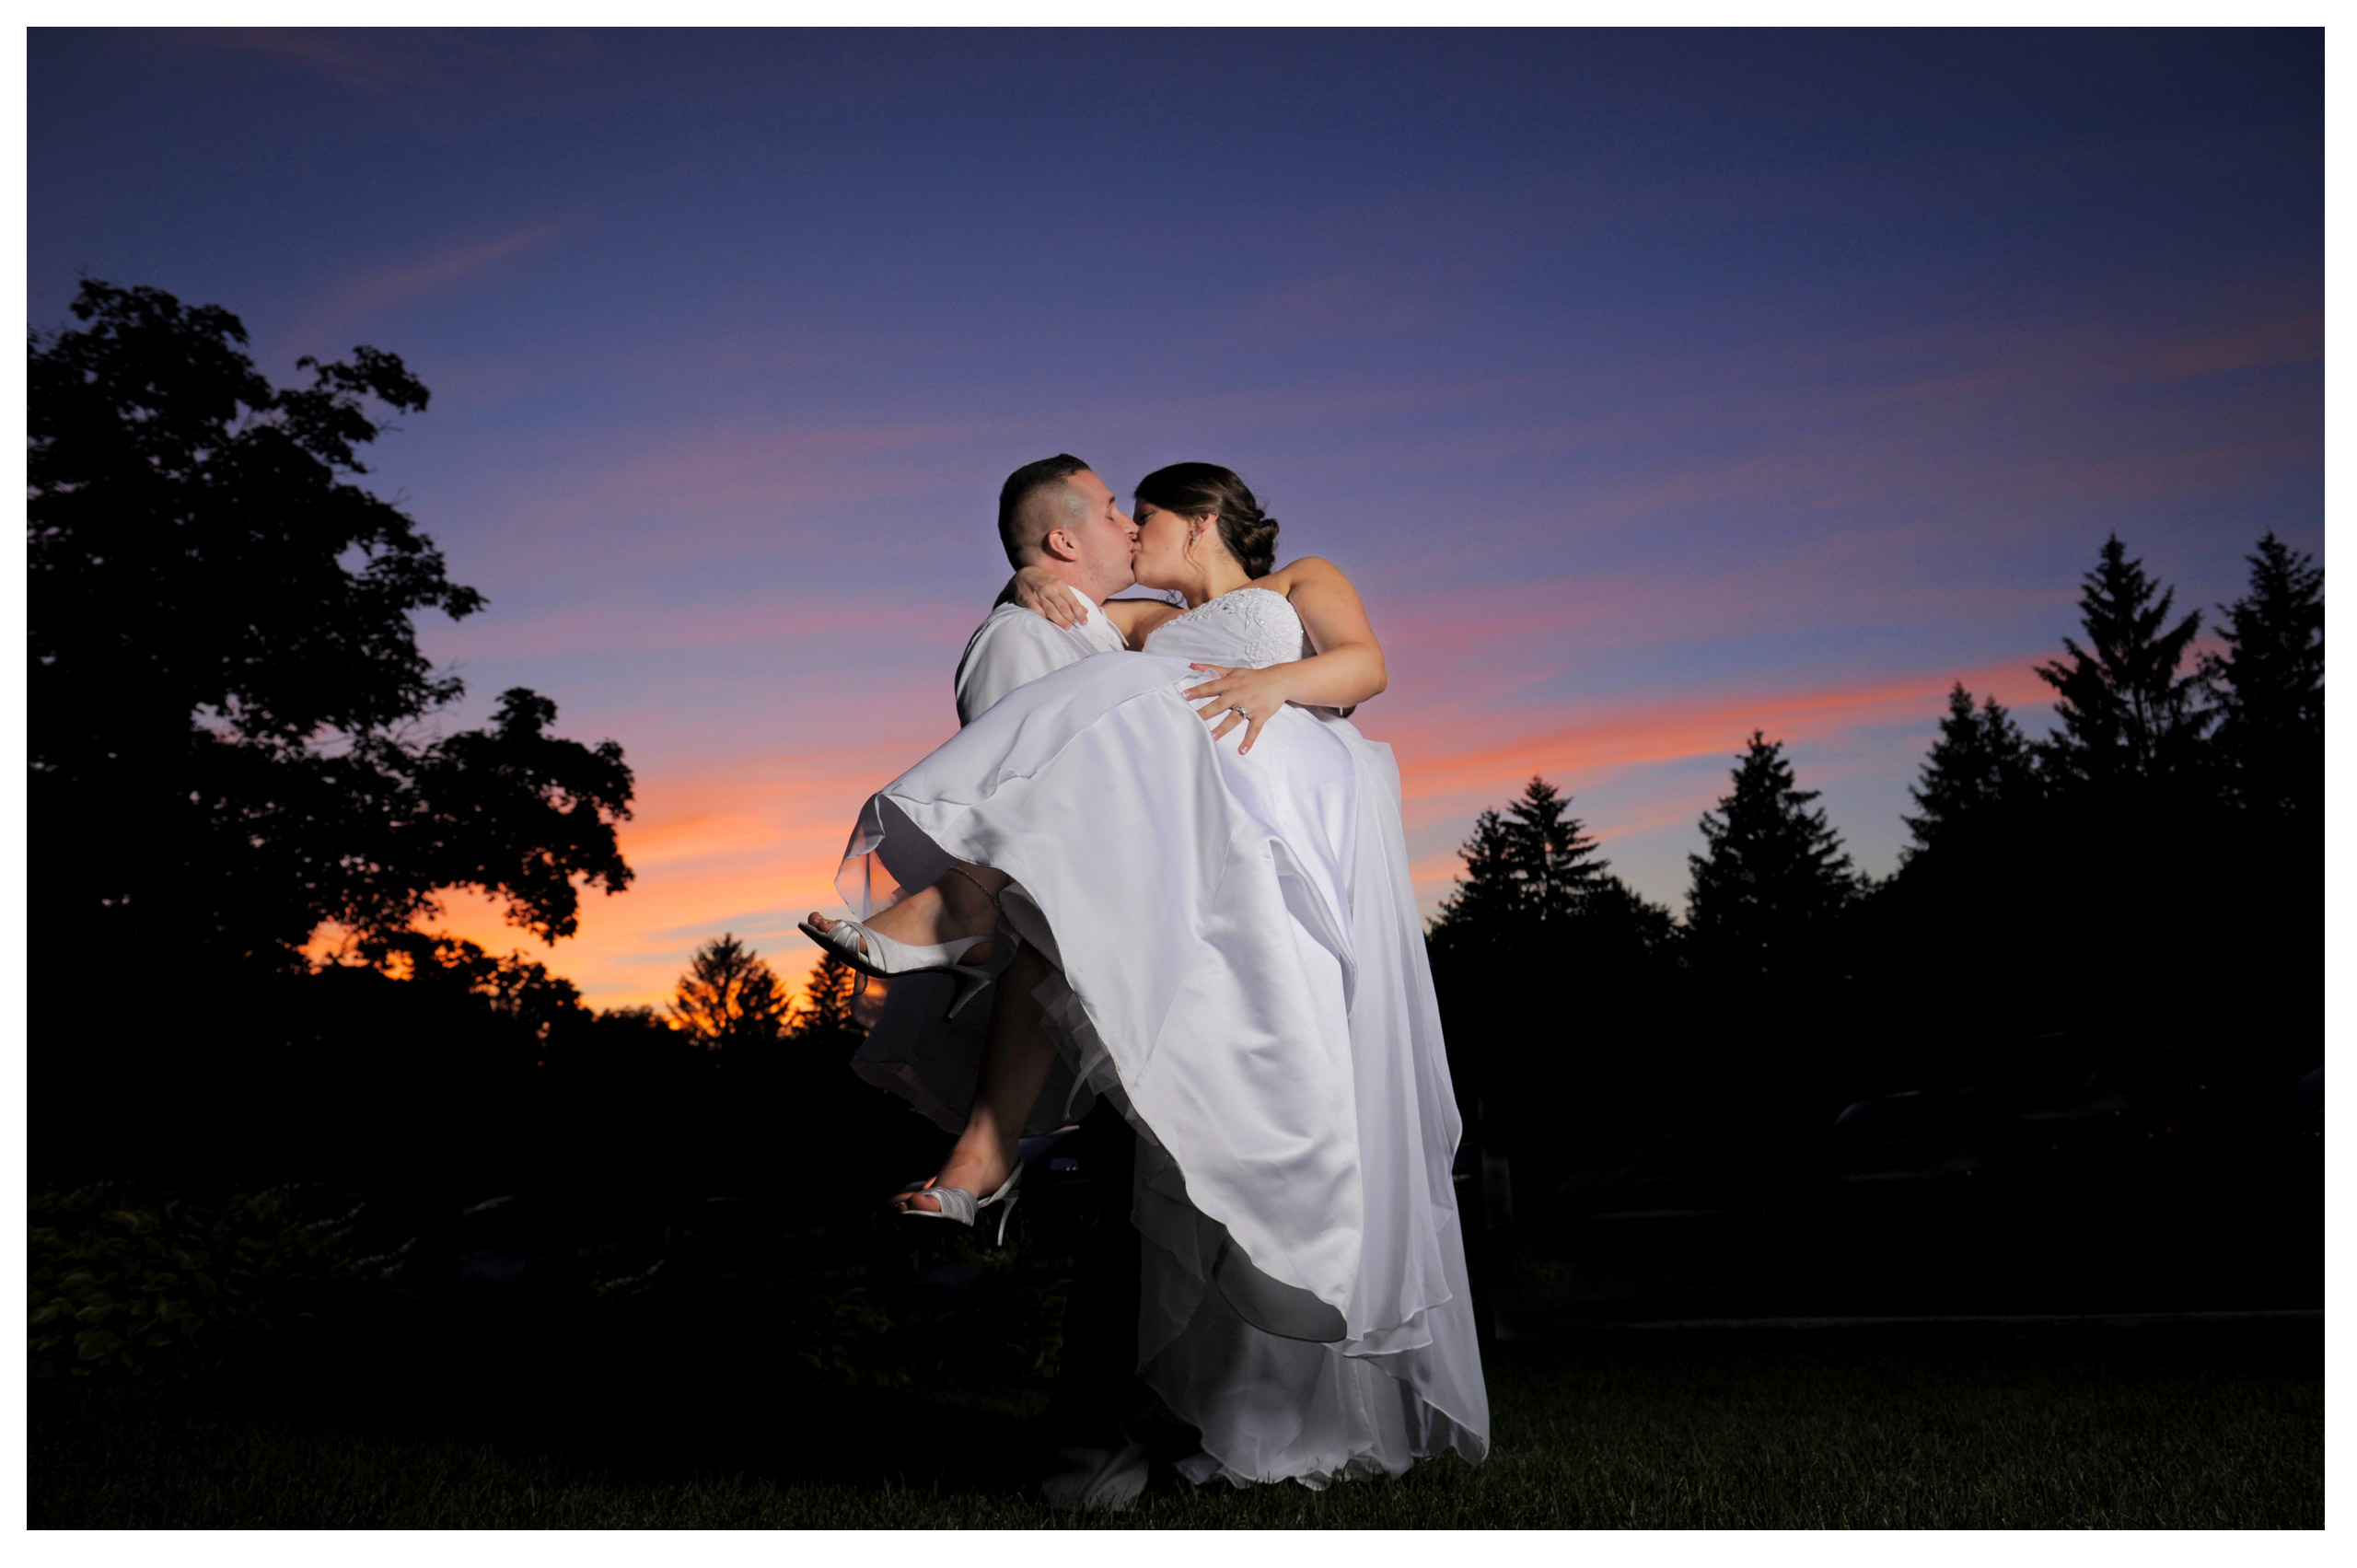 A Clarkston, Michigan wedding at The Carriage House just before darkness and a storm hit.